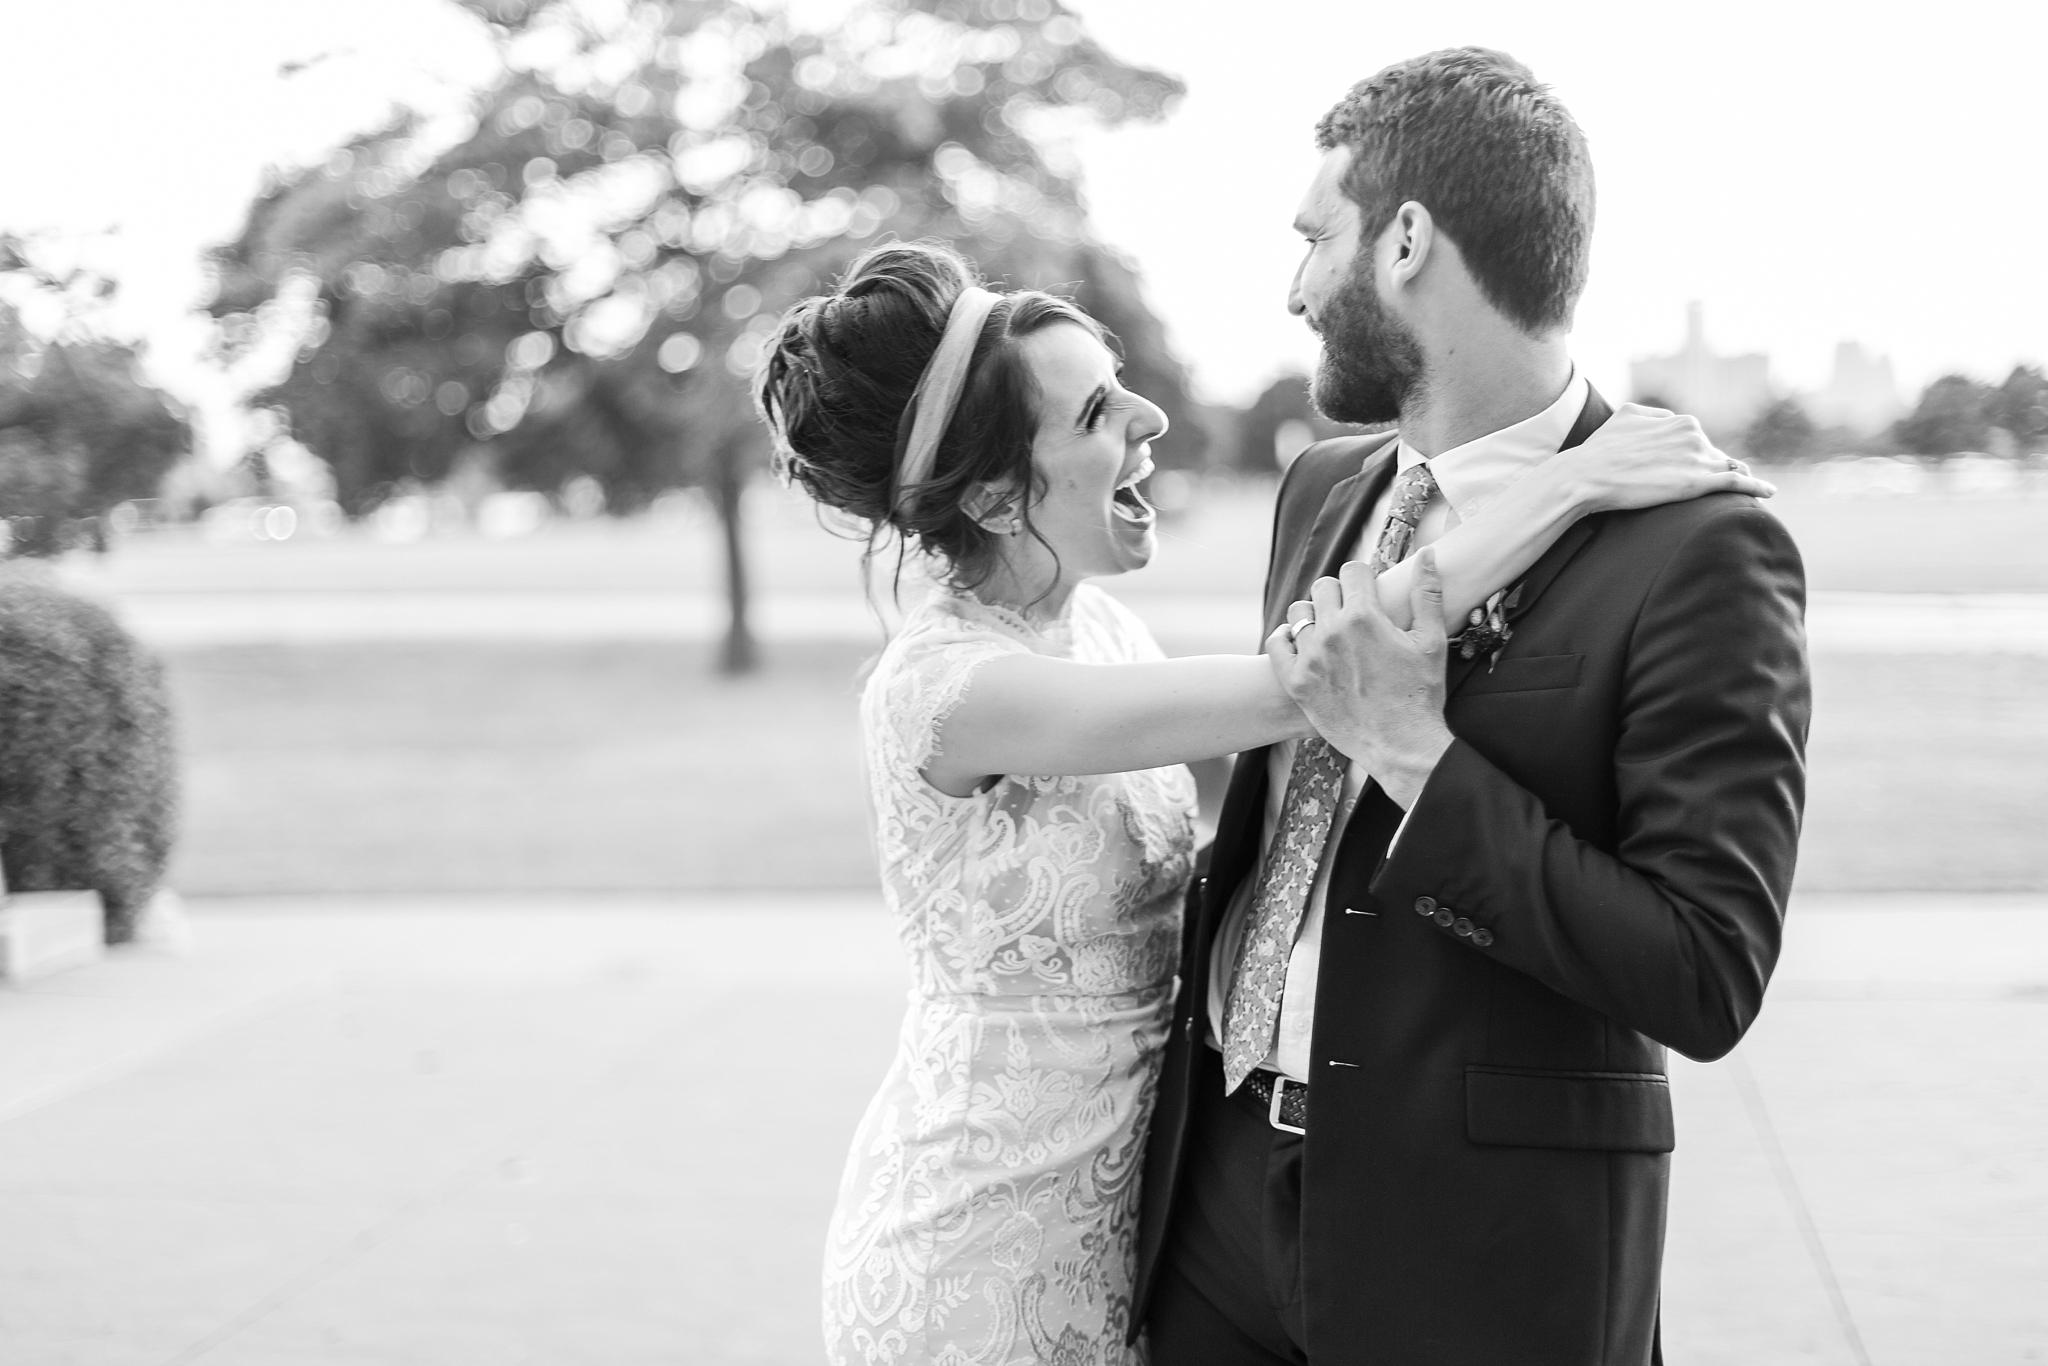 alternative-joyful-wedding-photos-at-the-belle-isle-casino-in-detroit-michigan-by-courtney-carolyn-photography_0065.jpg